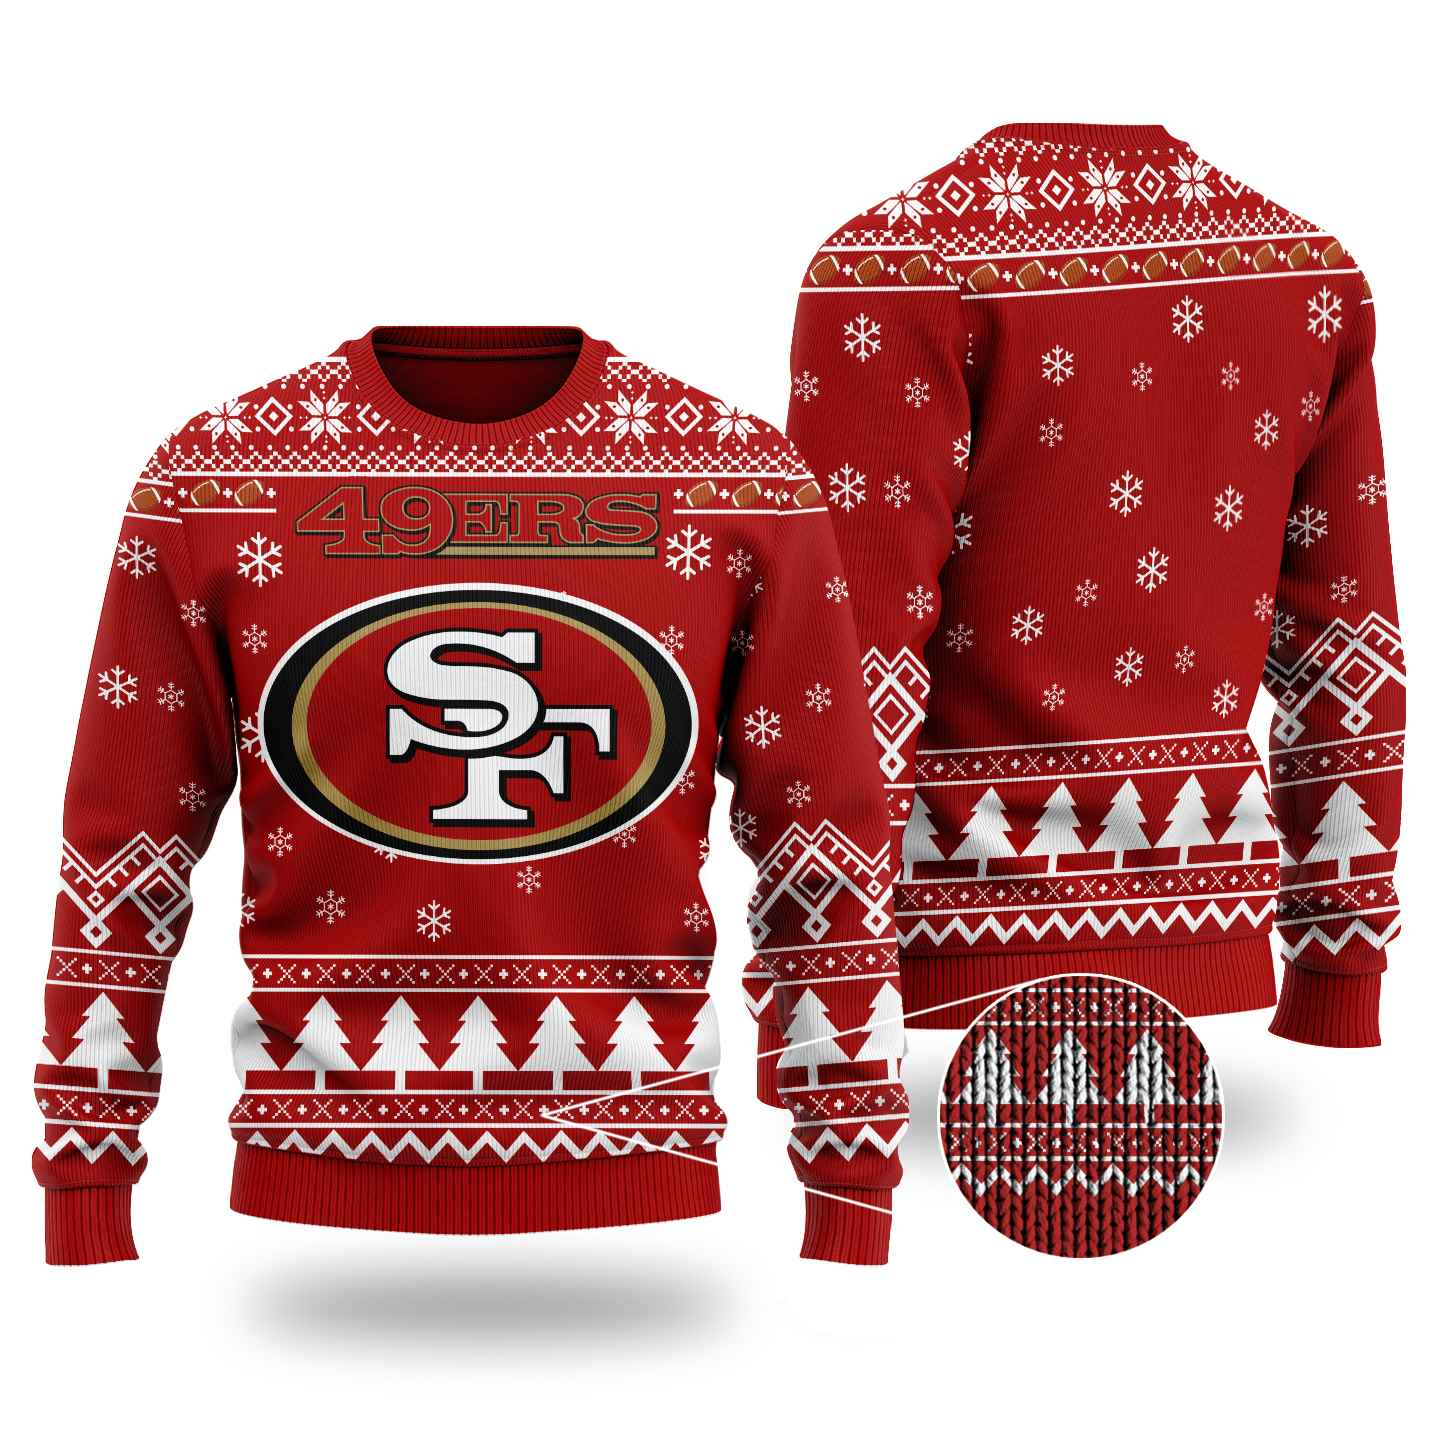 Nfl San Francisco 49ers Chibi Ugly Christmas Sweater Wool Material